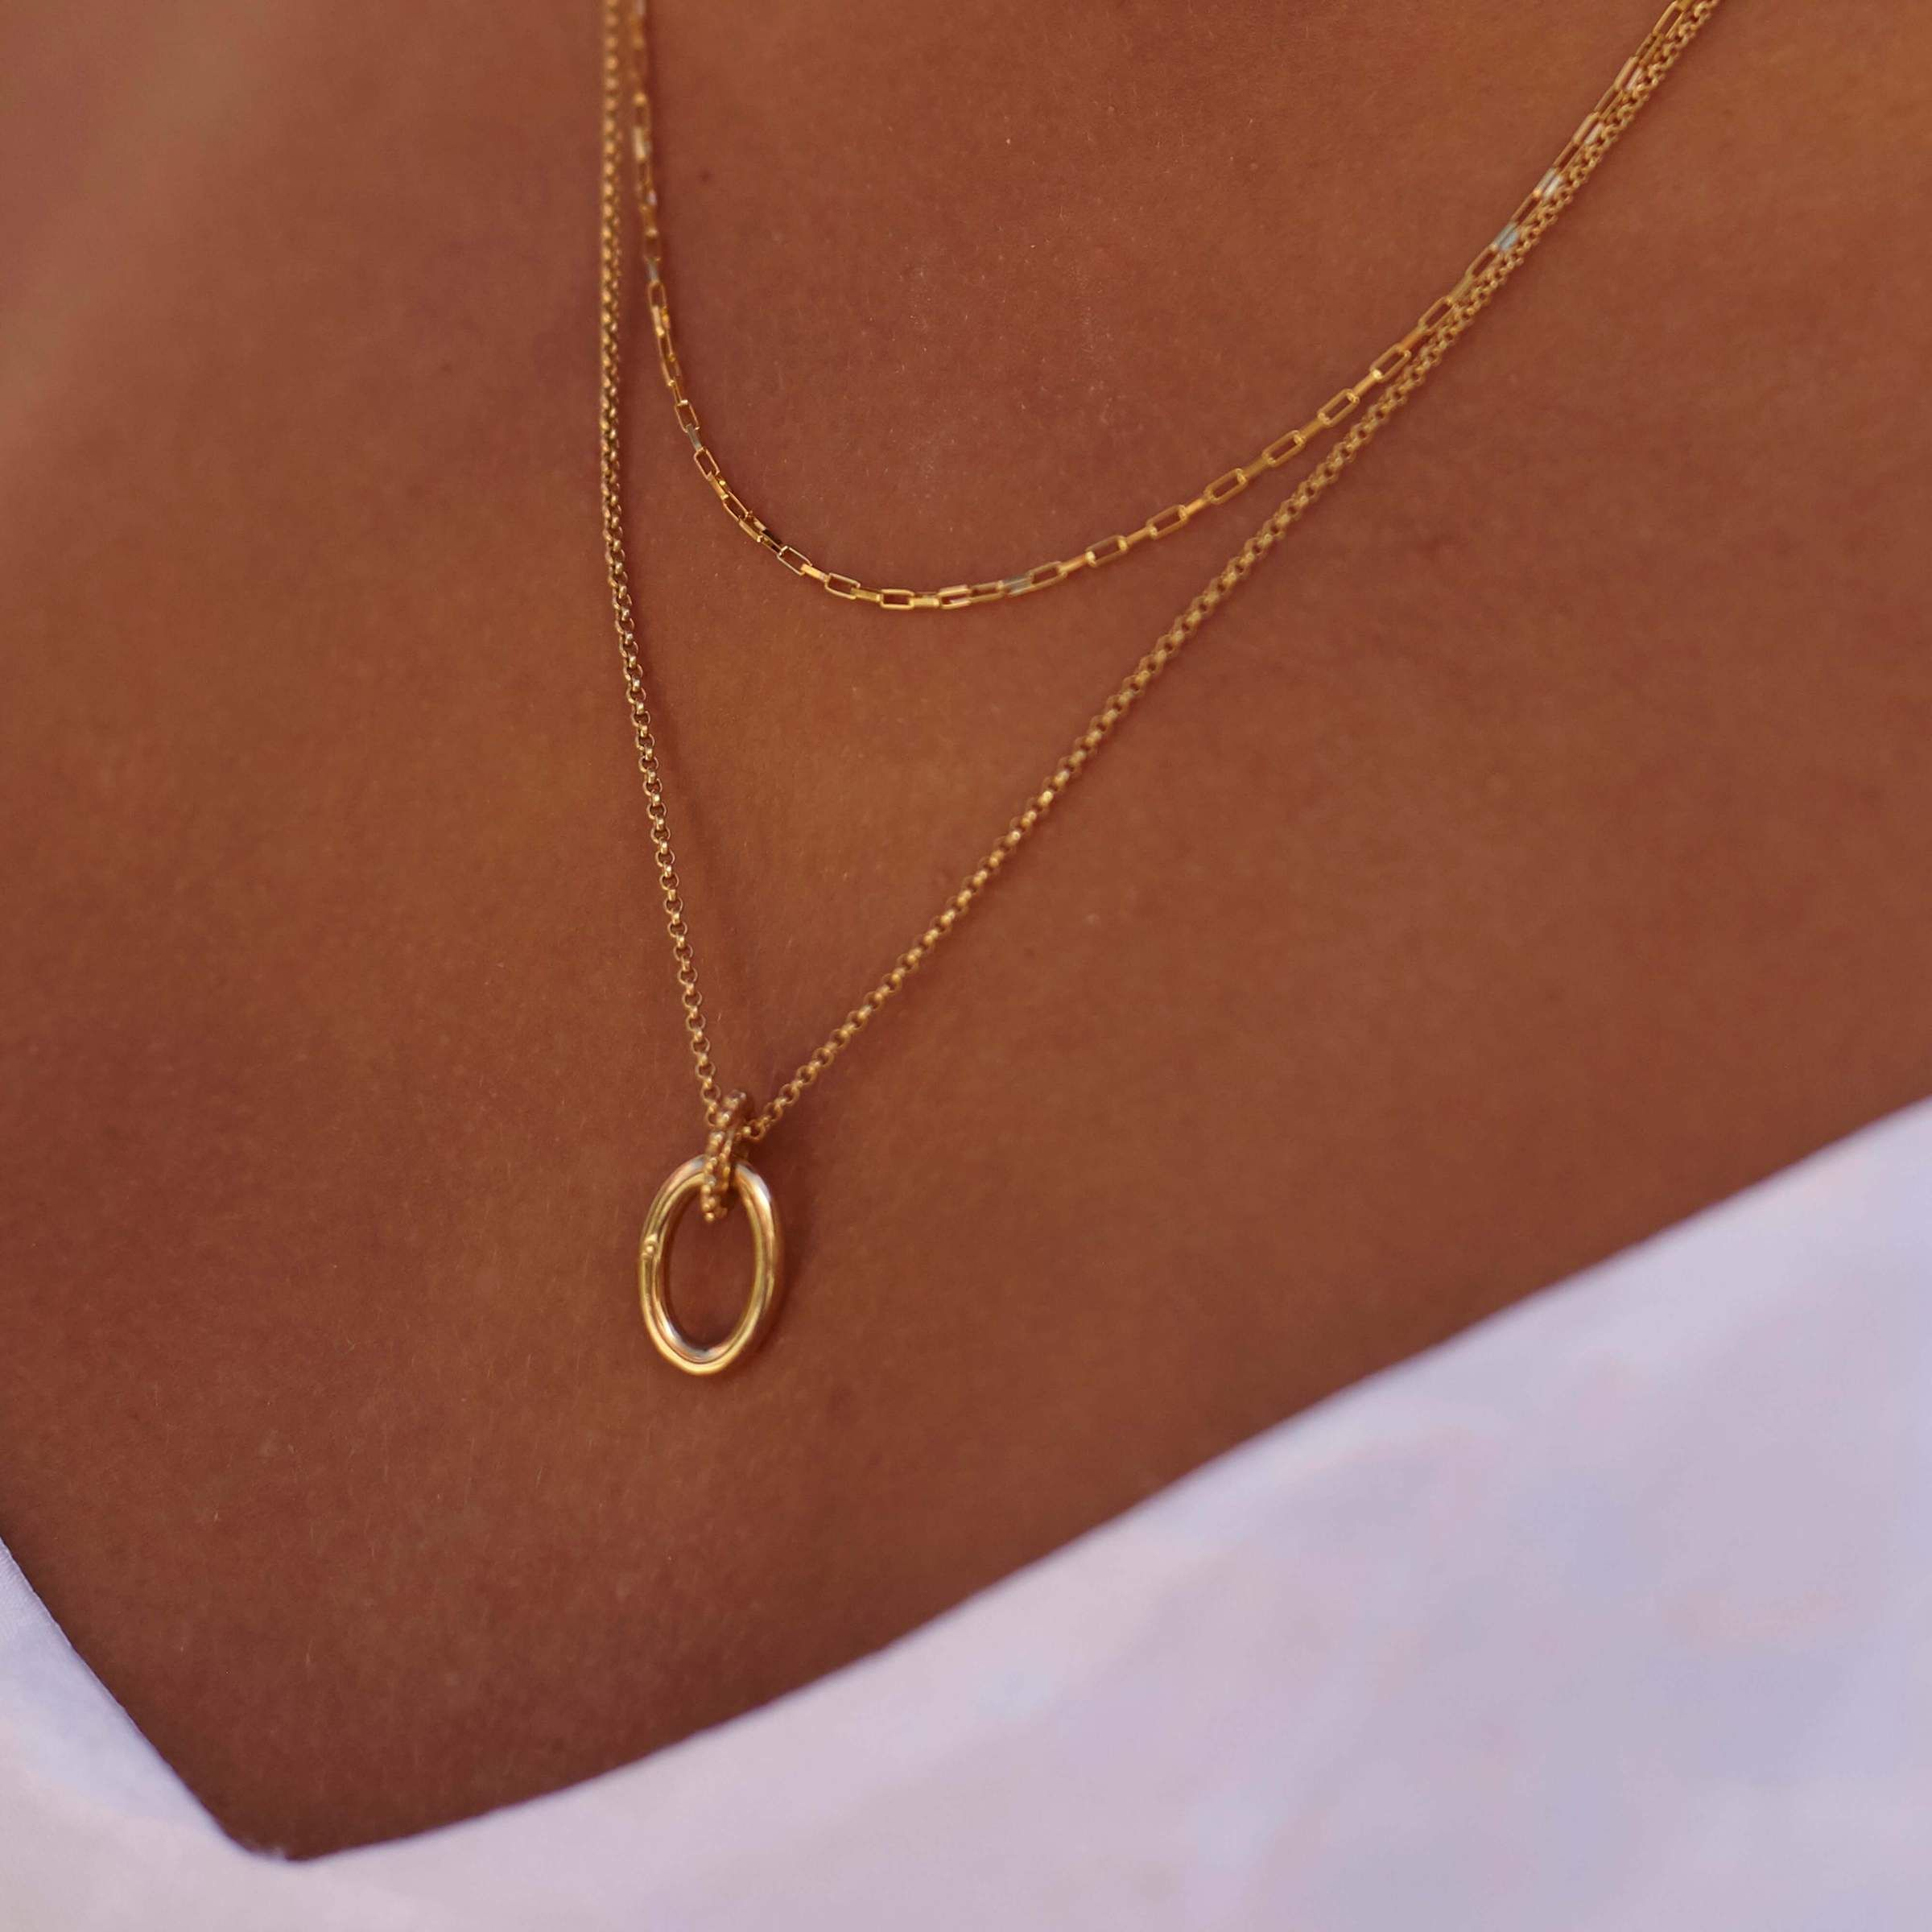 gifts for her textured oval necklace layering necklace Gold oval necklace-textured pendant-18k gold plated